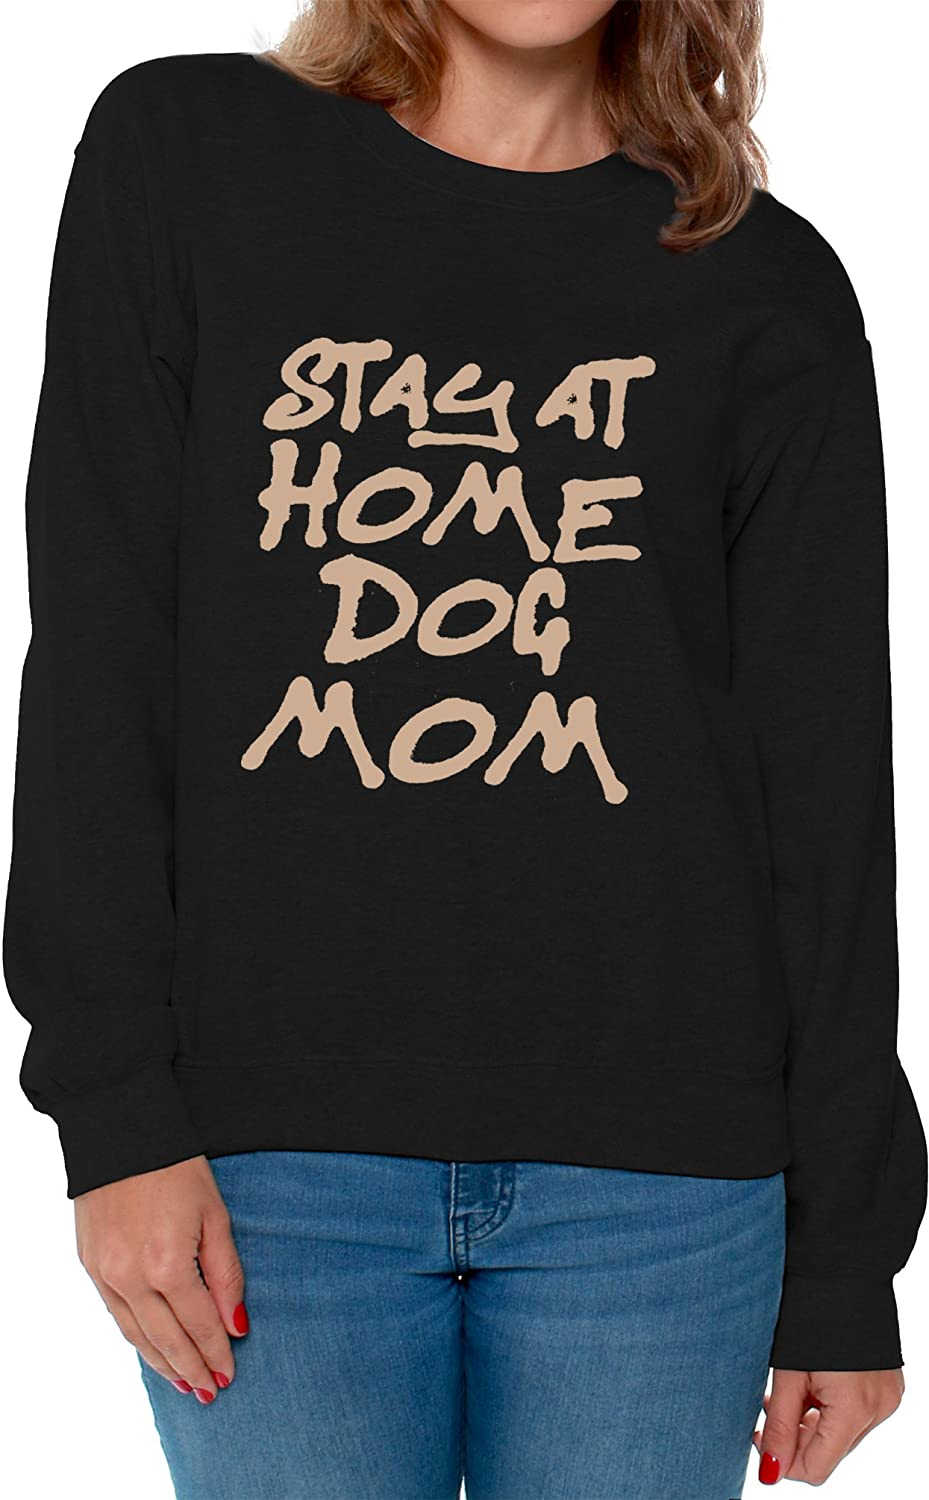 Awkward Styles Women's Stay at Home Dog Mom Graphic Sweatshirt Tops for Dog Lovers